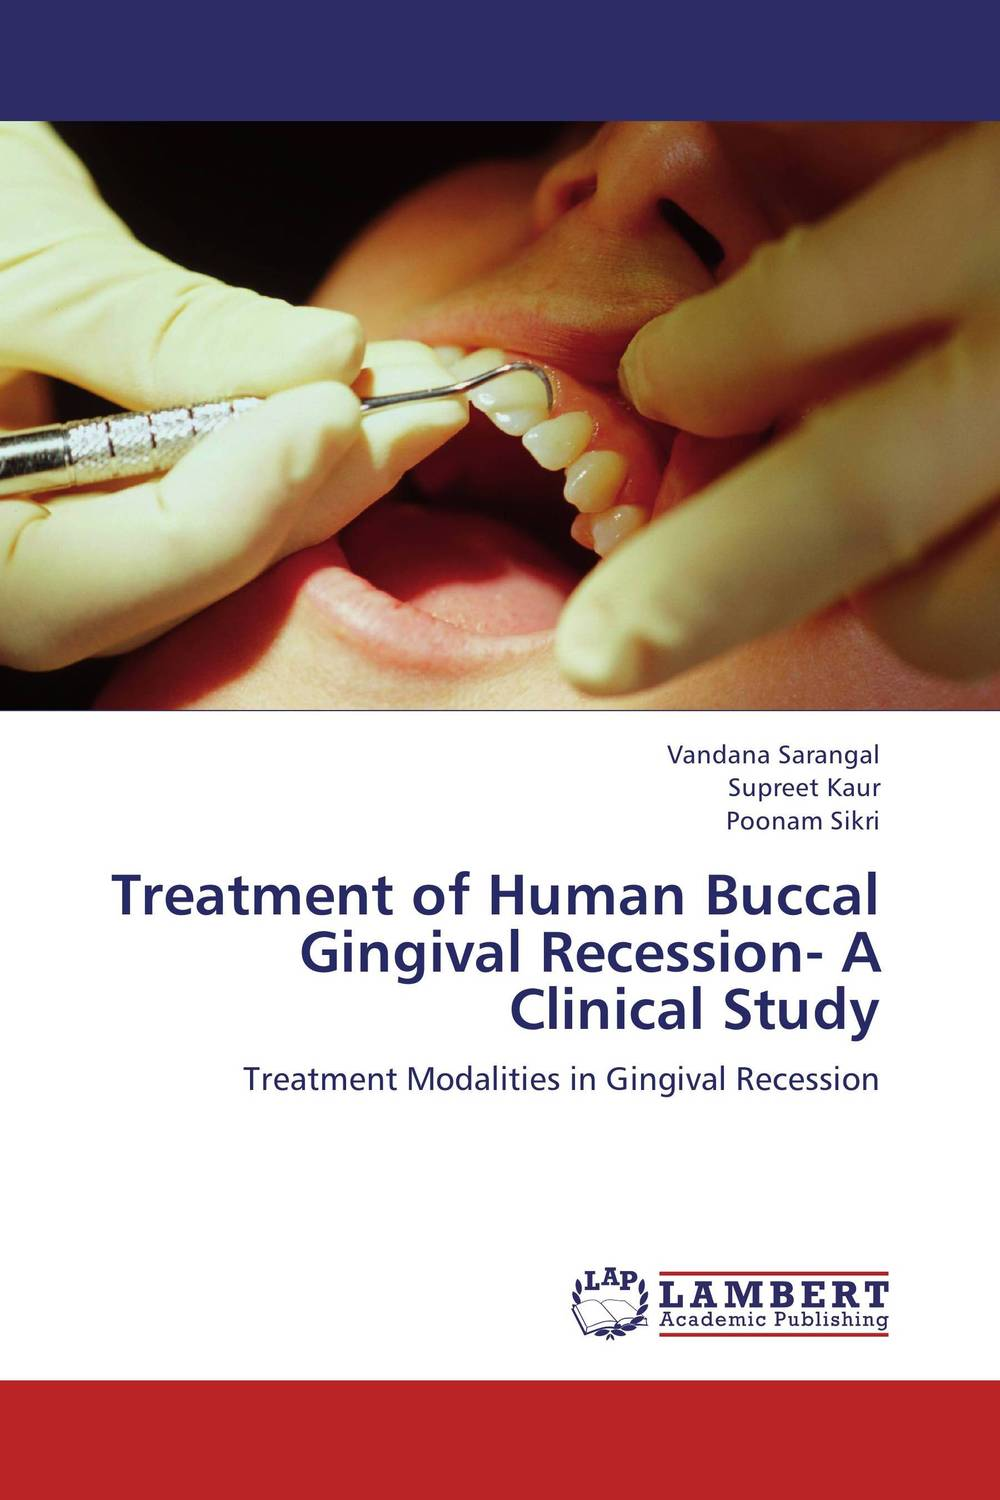 Treatment of Human Buccal Gingival Recession- A Clinical Study concepts of gingiva and gingival crevicular fluid